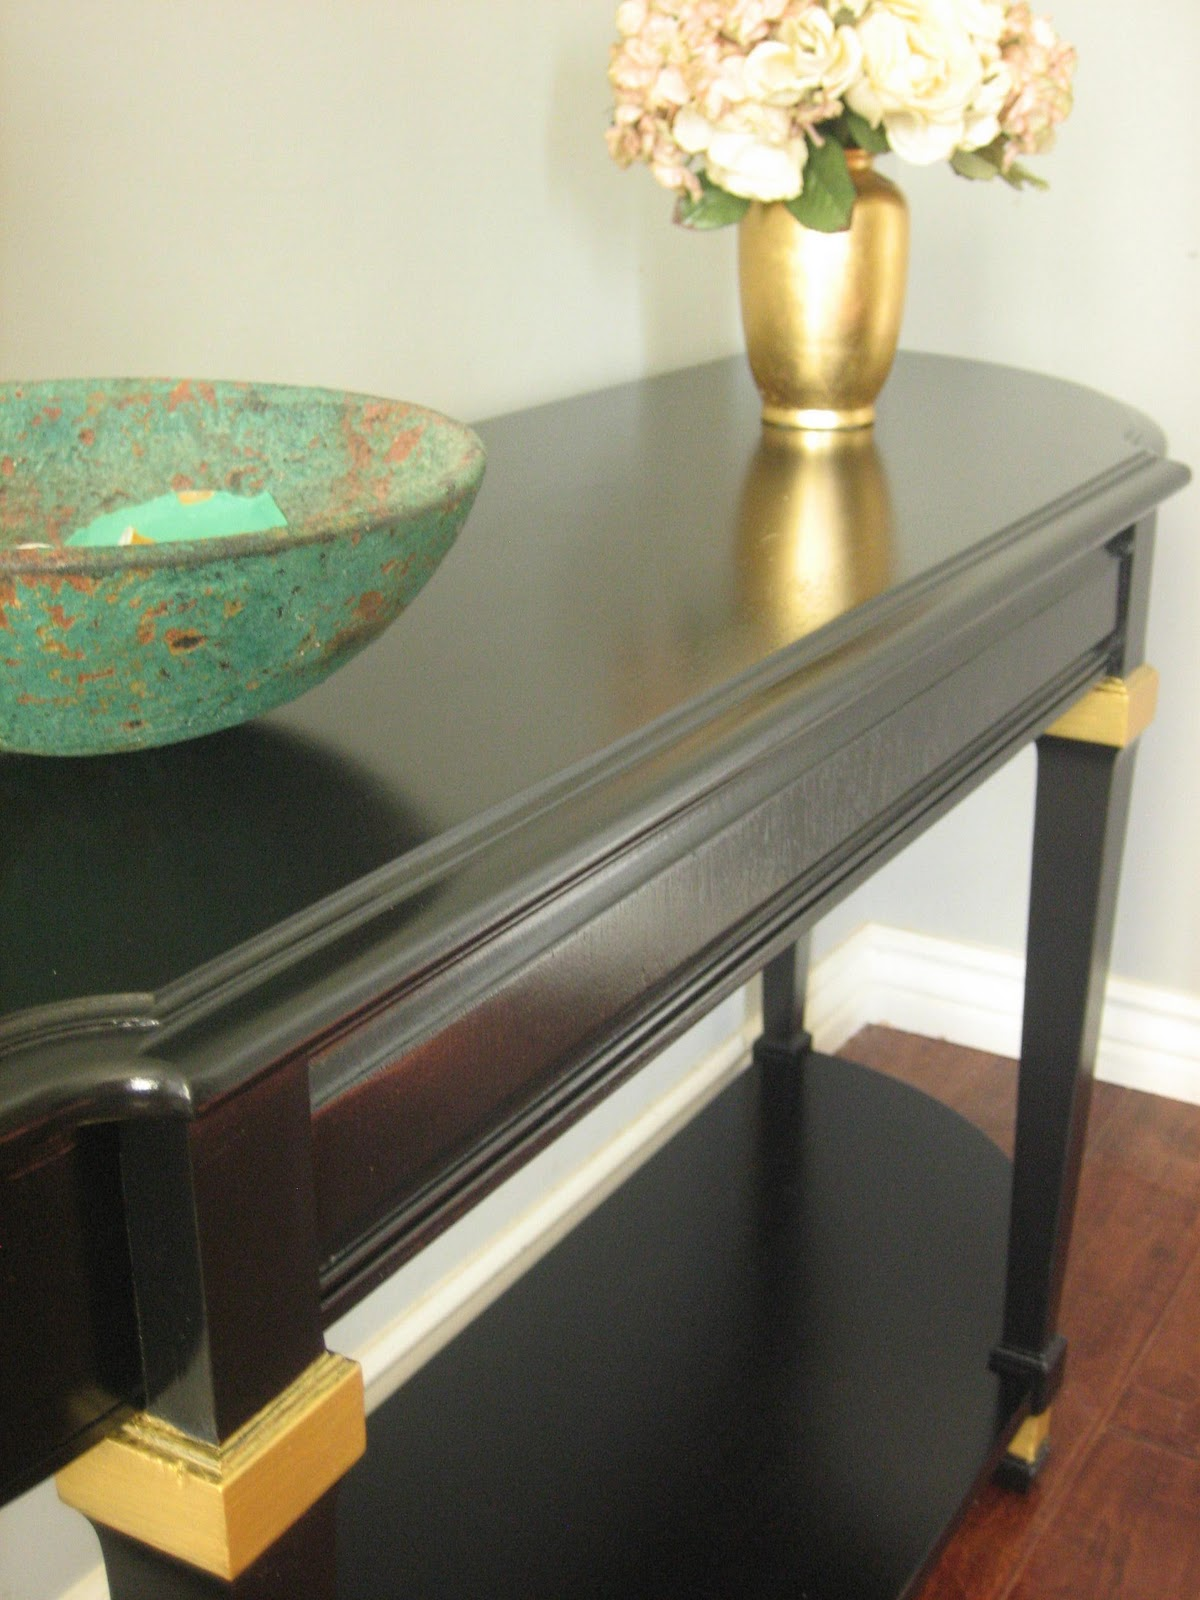 Hollywood Regency Console Table. Solid Wood By Lane. Sleek Black Finish  Accented With Gold. Has A Bottom Shelf. Use As A Console, Sofa Table Or ...